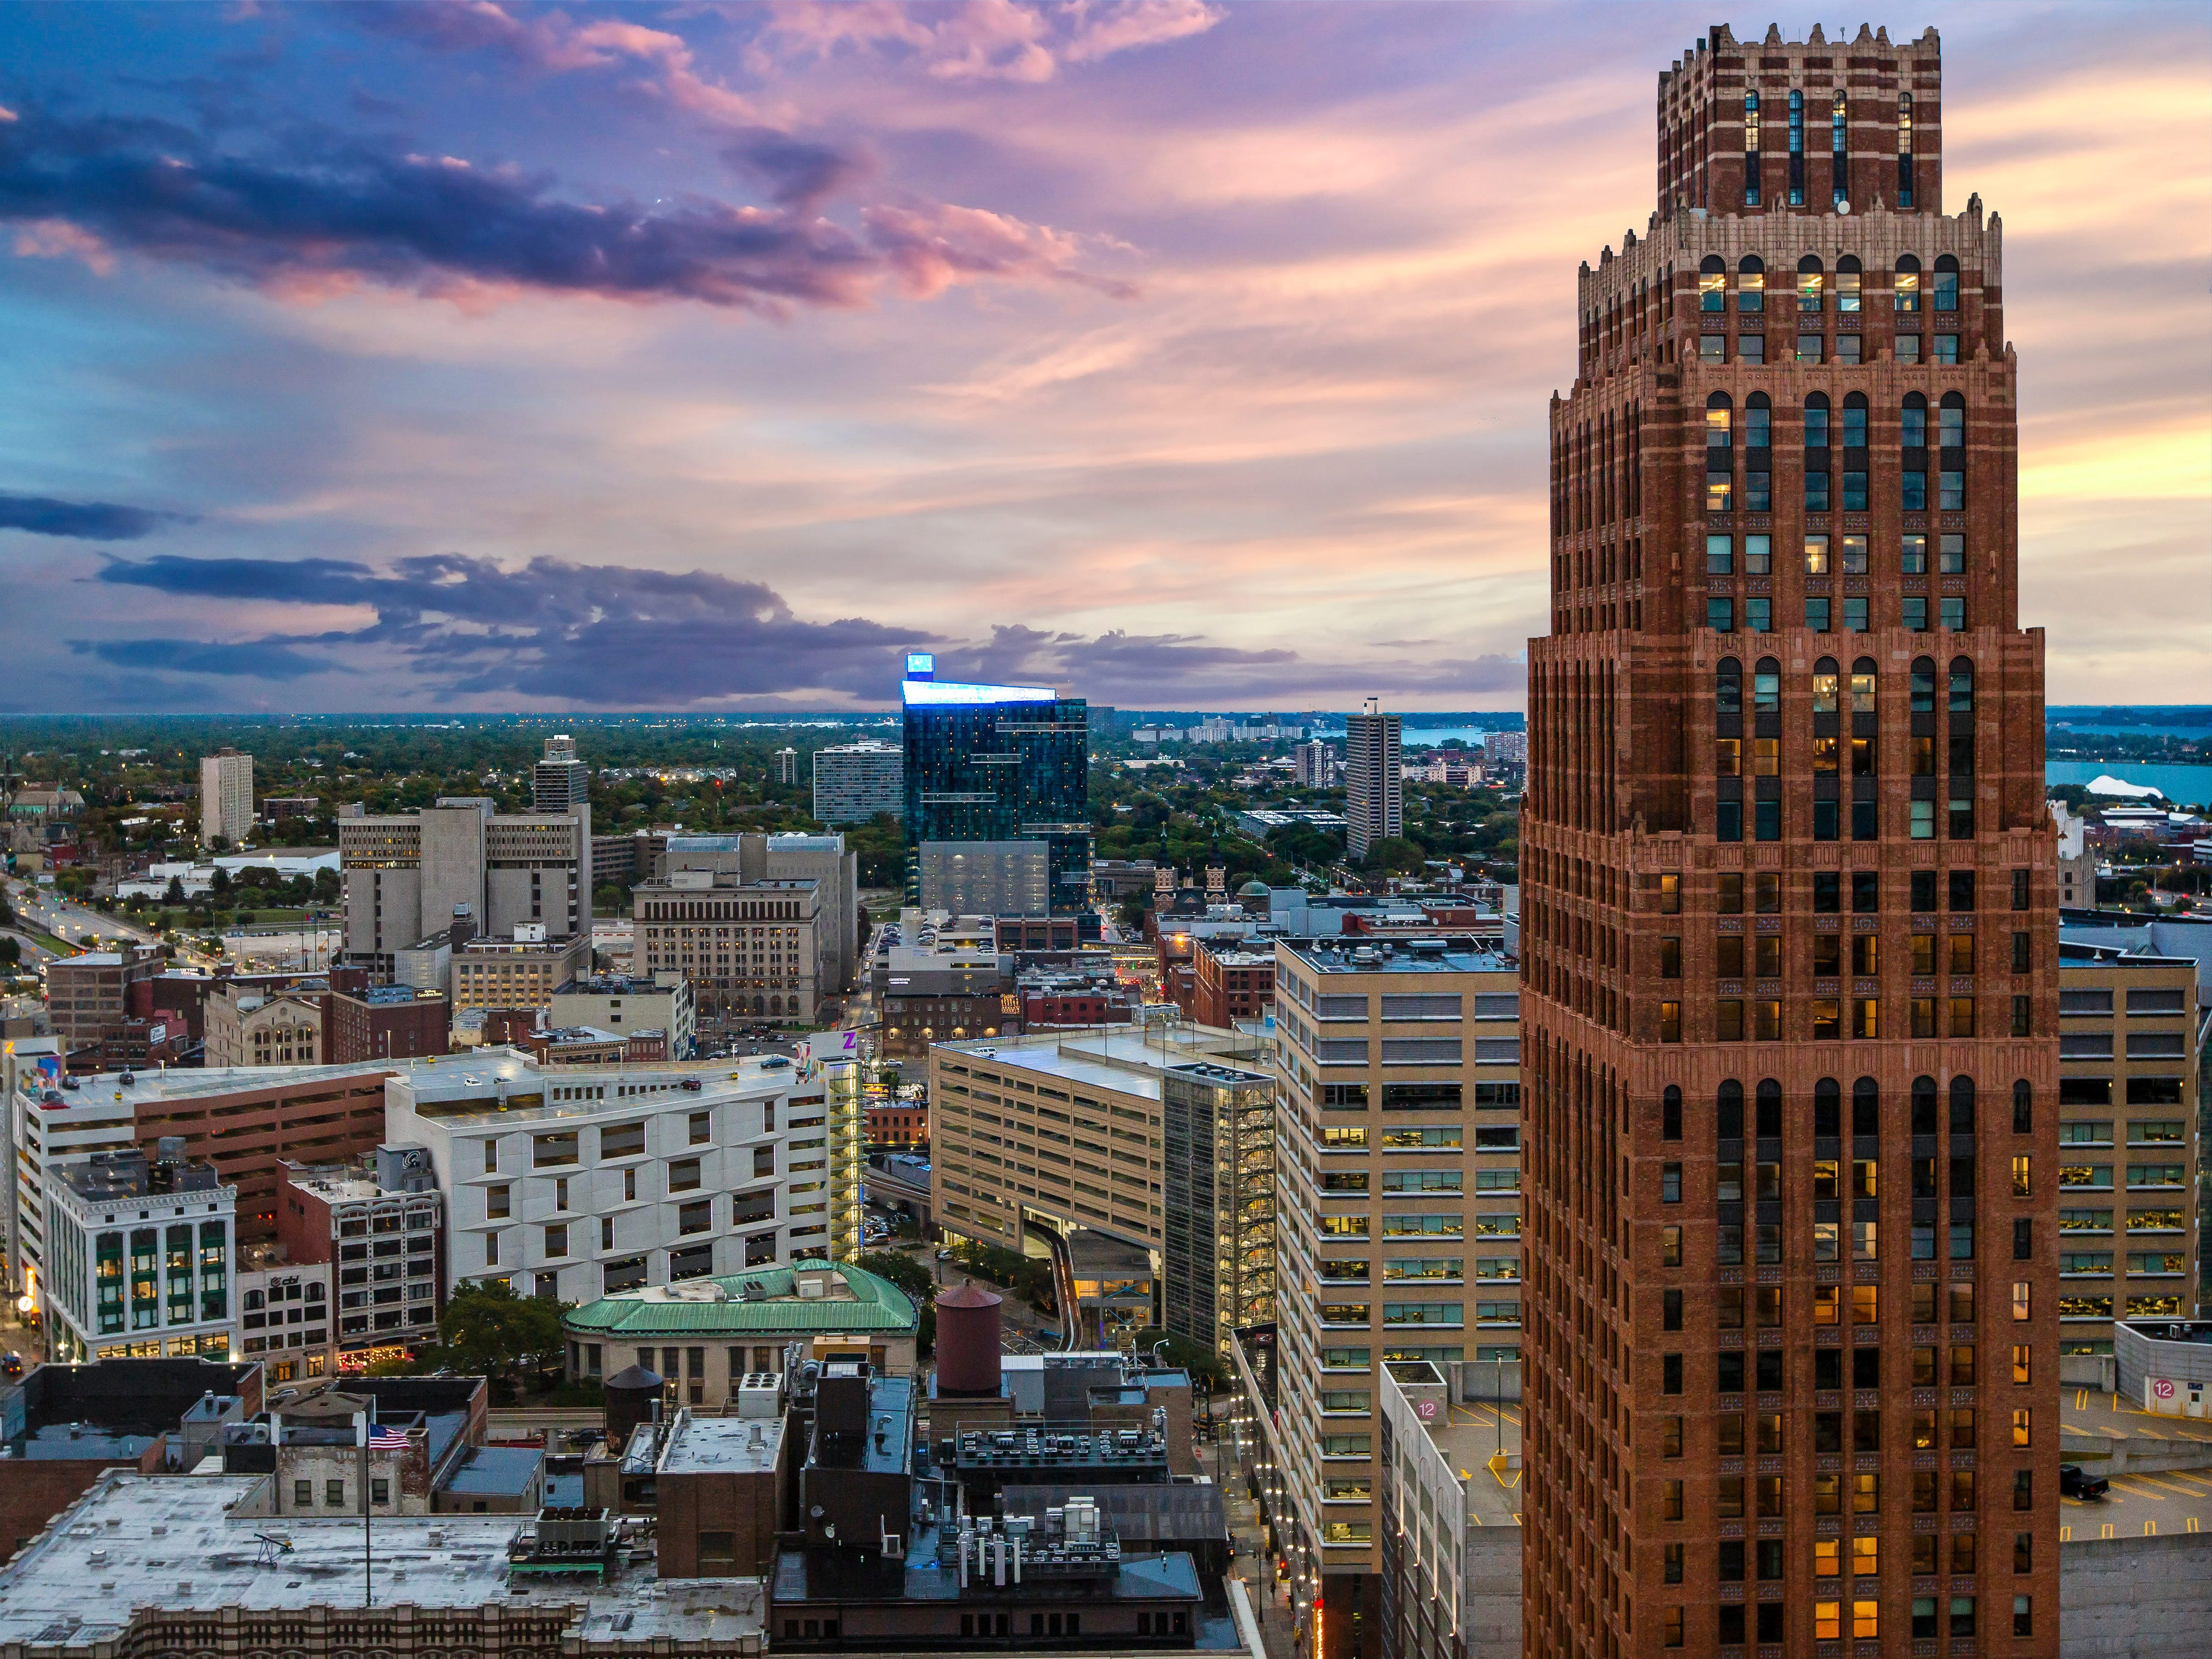 The view of the Detroit skyline is absolutely stunning from this penthouse condo at the top of the Westin Book Cadillac hotel building.